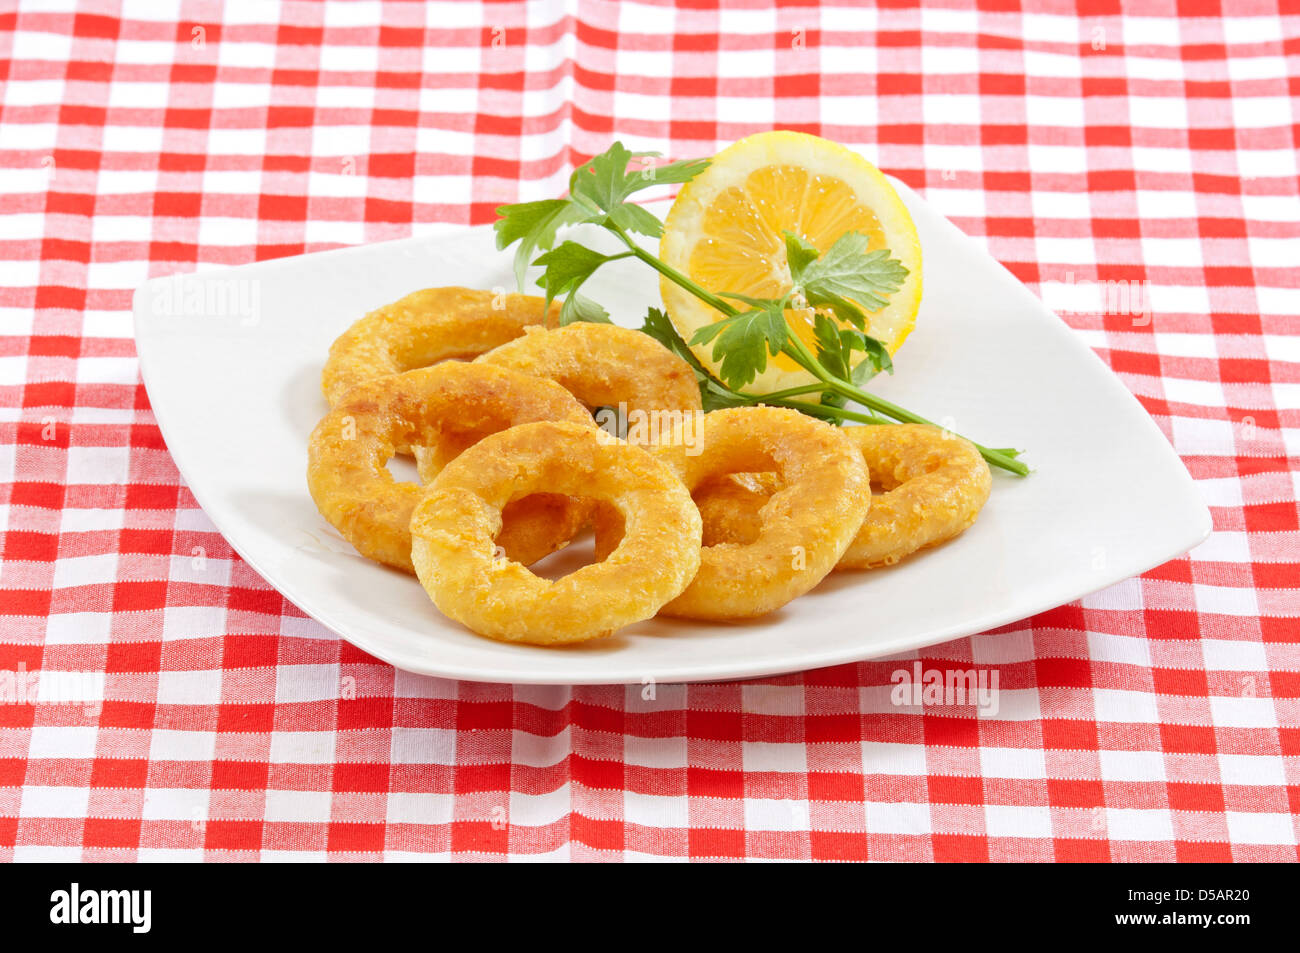 deep fried breaded calamari(squid) rings served in a white plate on a traditional napkin - Stock Image